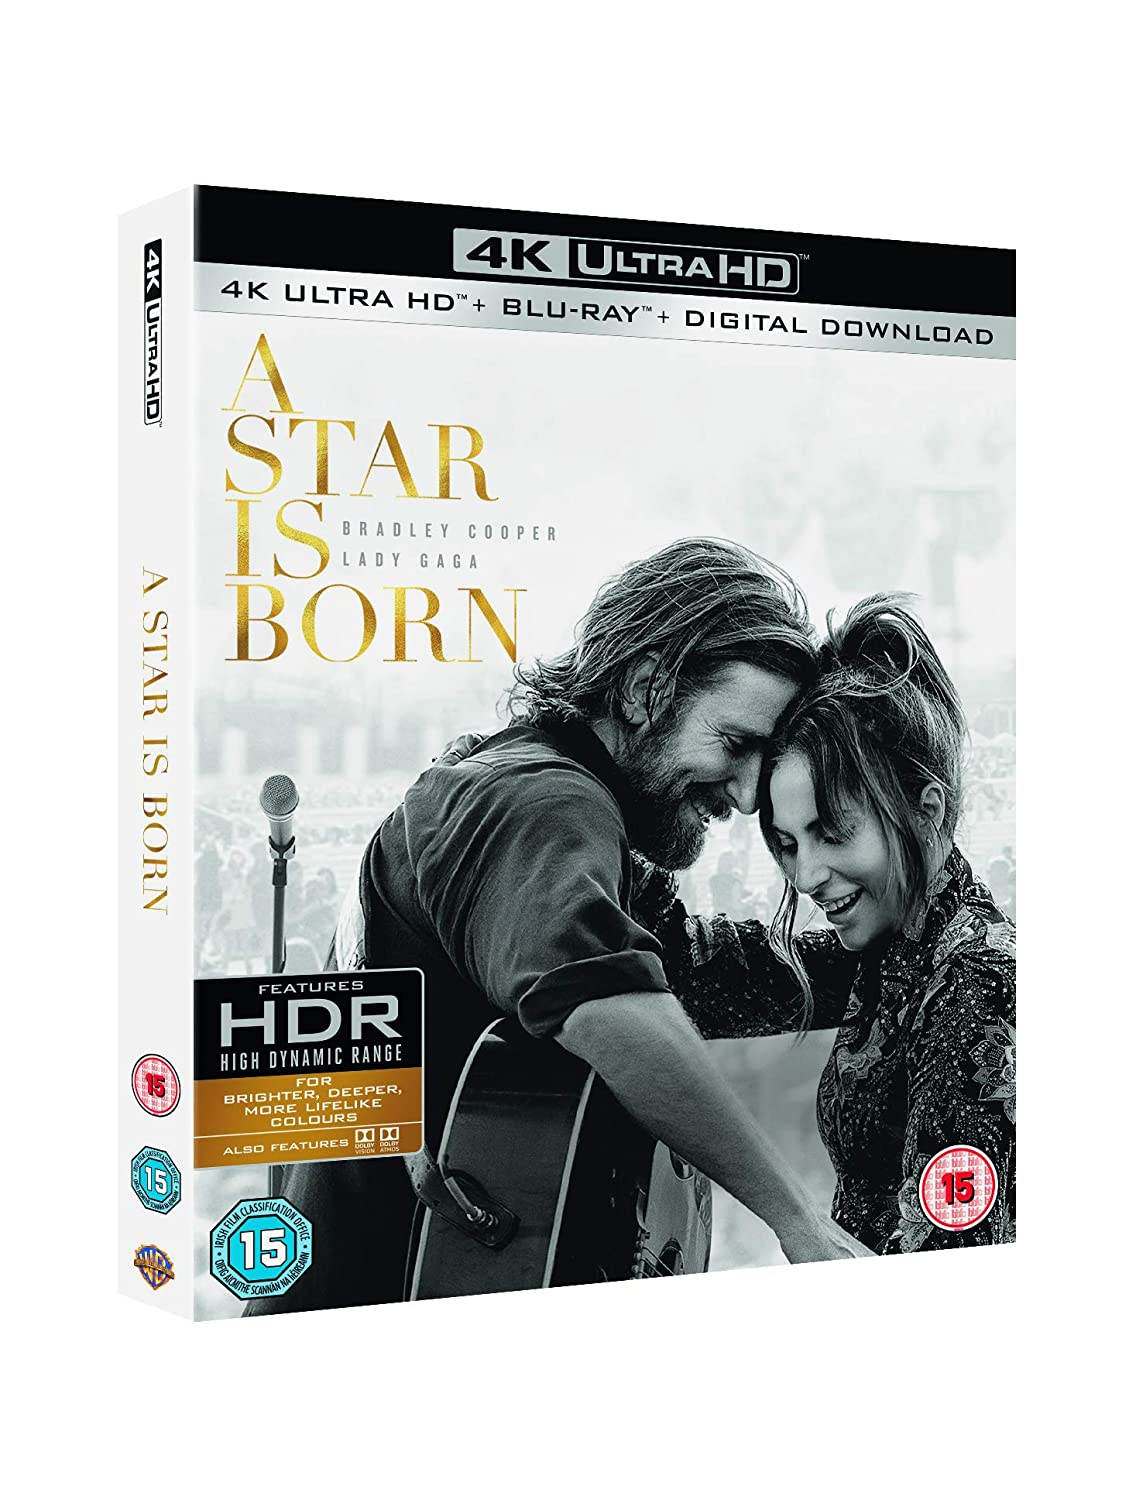 a star is born extended version dvd